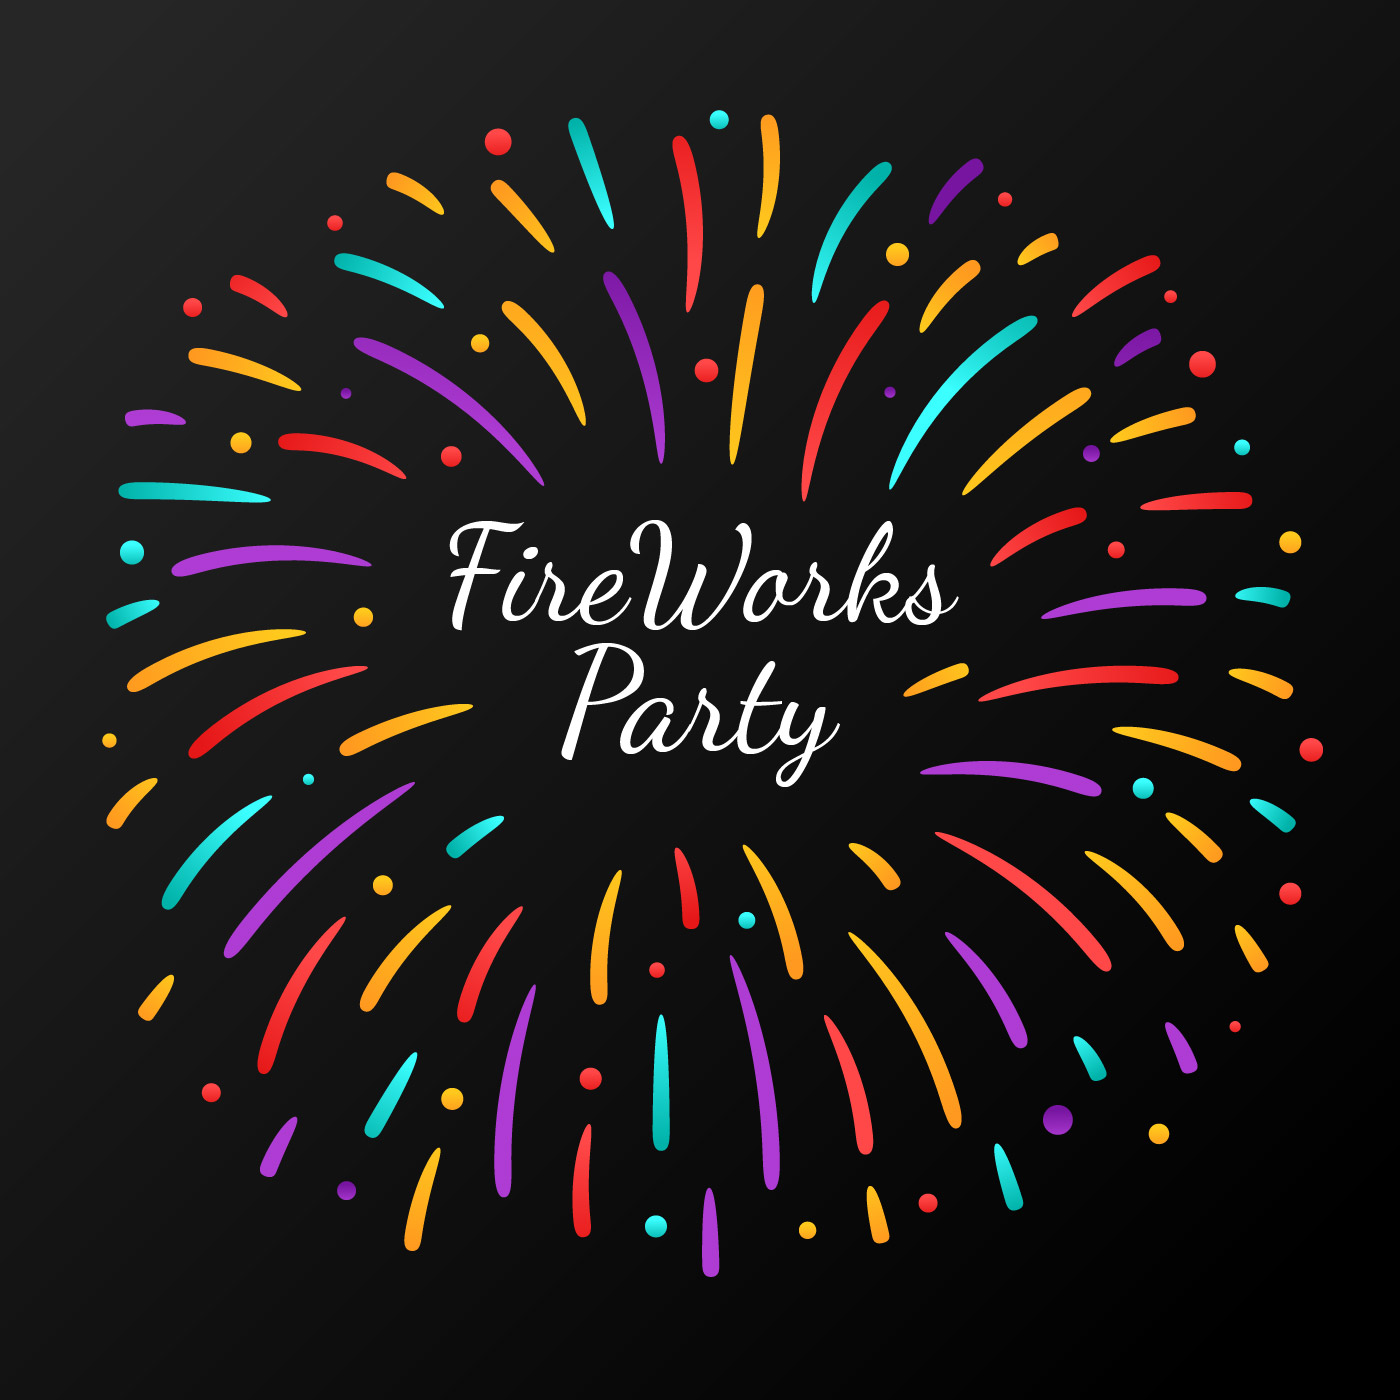 Celebration Fireworks Party Download Free Vector Art